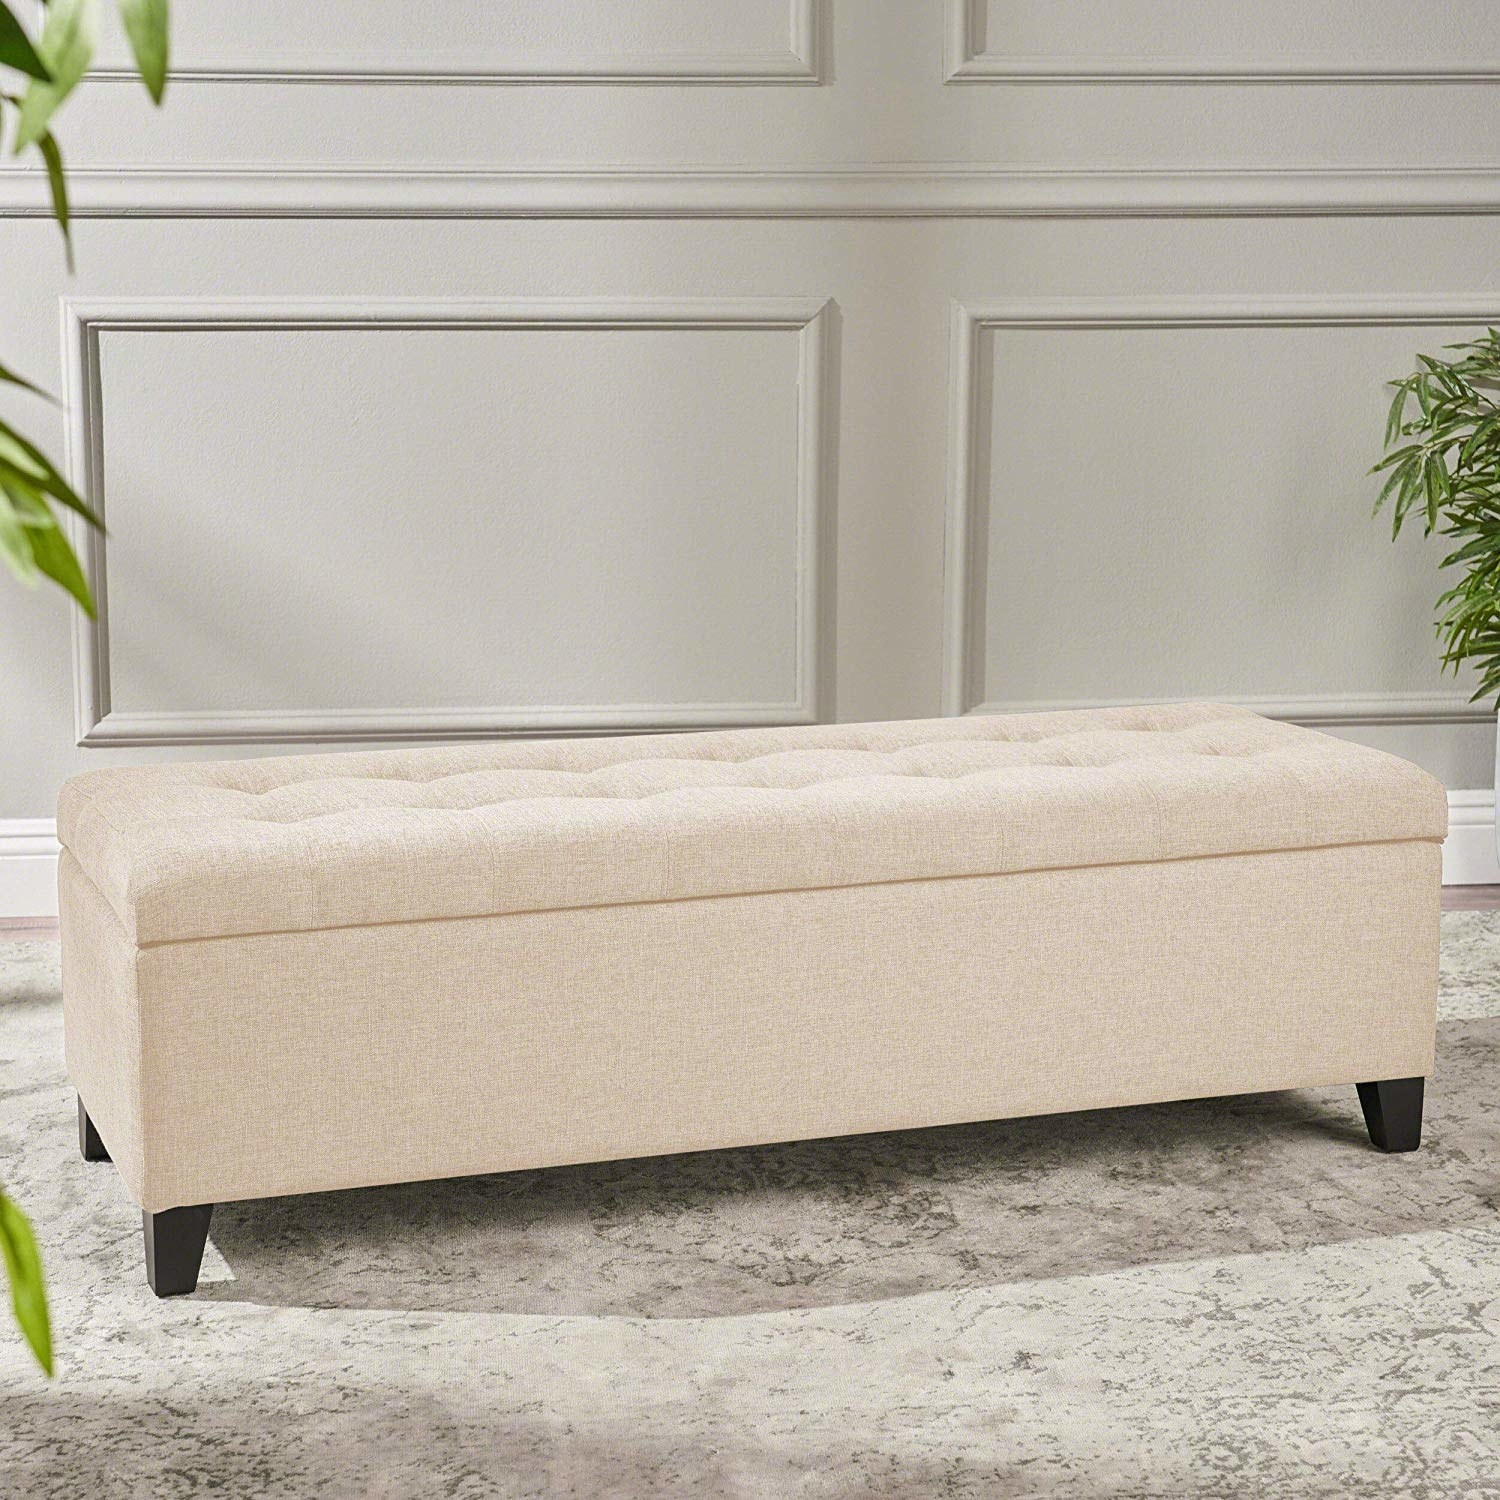 A taupe tufted storage ottoman with tapered legs